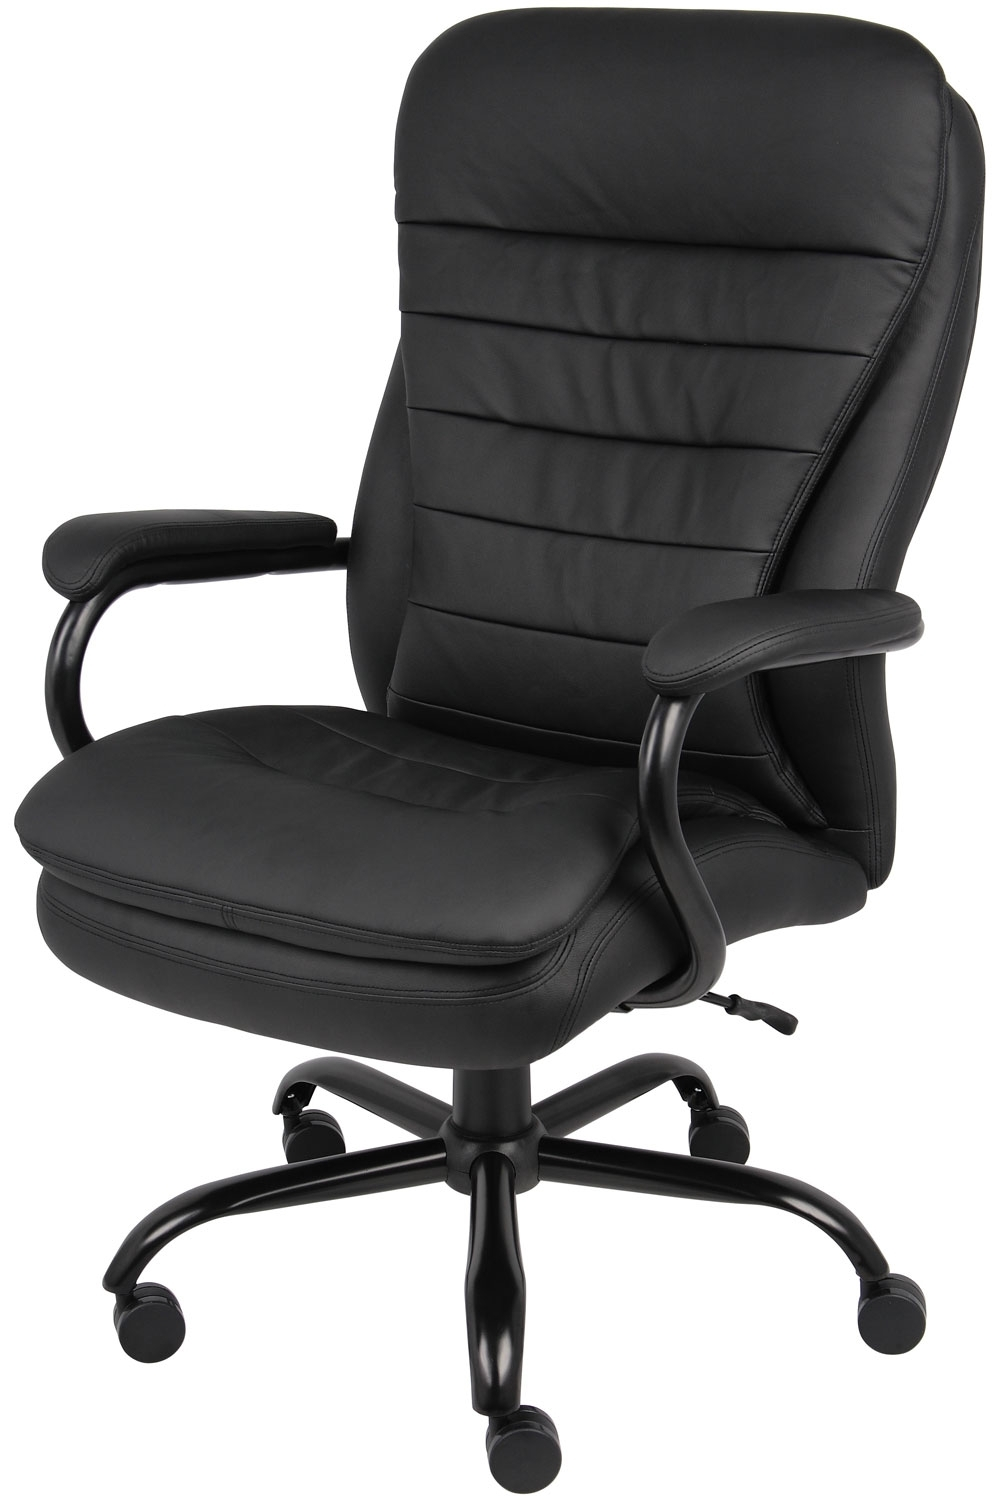 Most Popular B991 Cp Big And Tall Executive Office Chair In Caresoft Vinyl Inside Black Executive Office Chairs (Gallery 16 of 20)